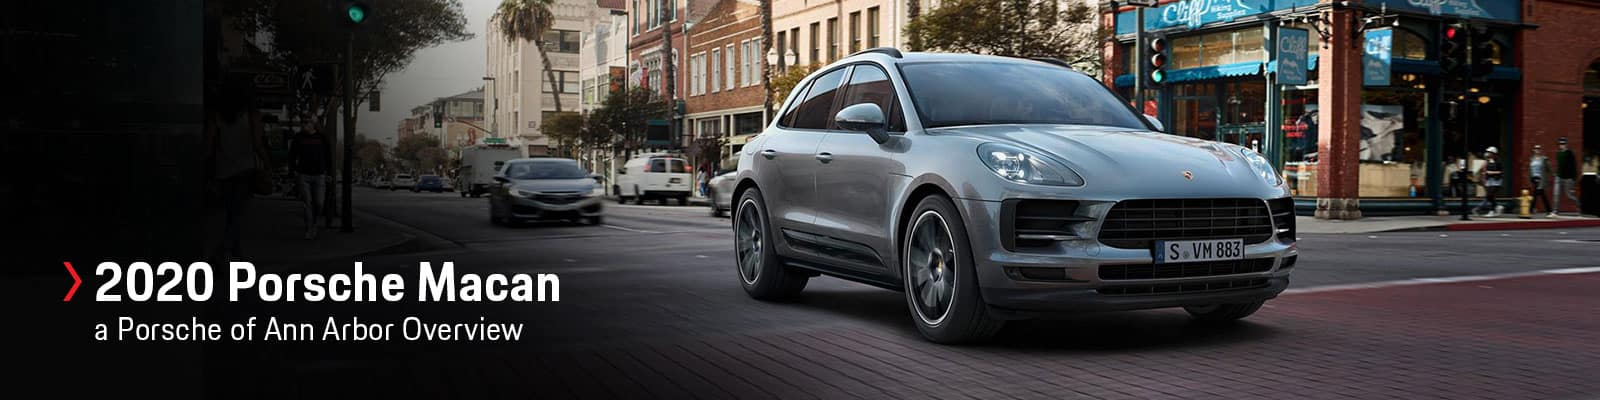 2020 Porsche Macan Review with Prices, Photos, & Specs at Porsche of Ann Arbor